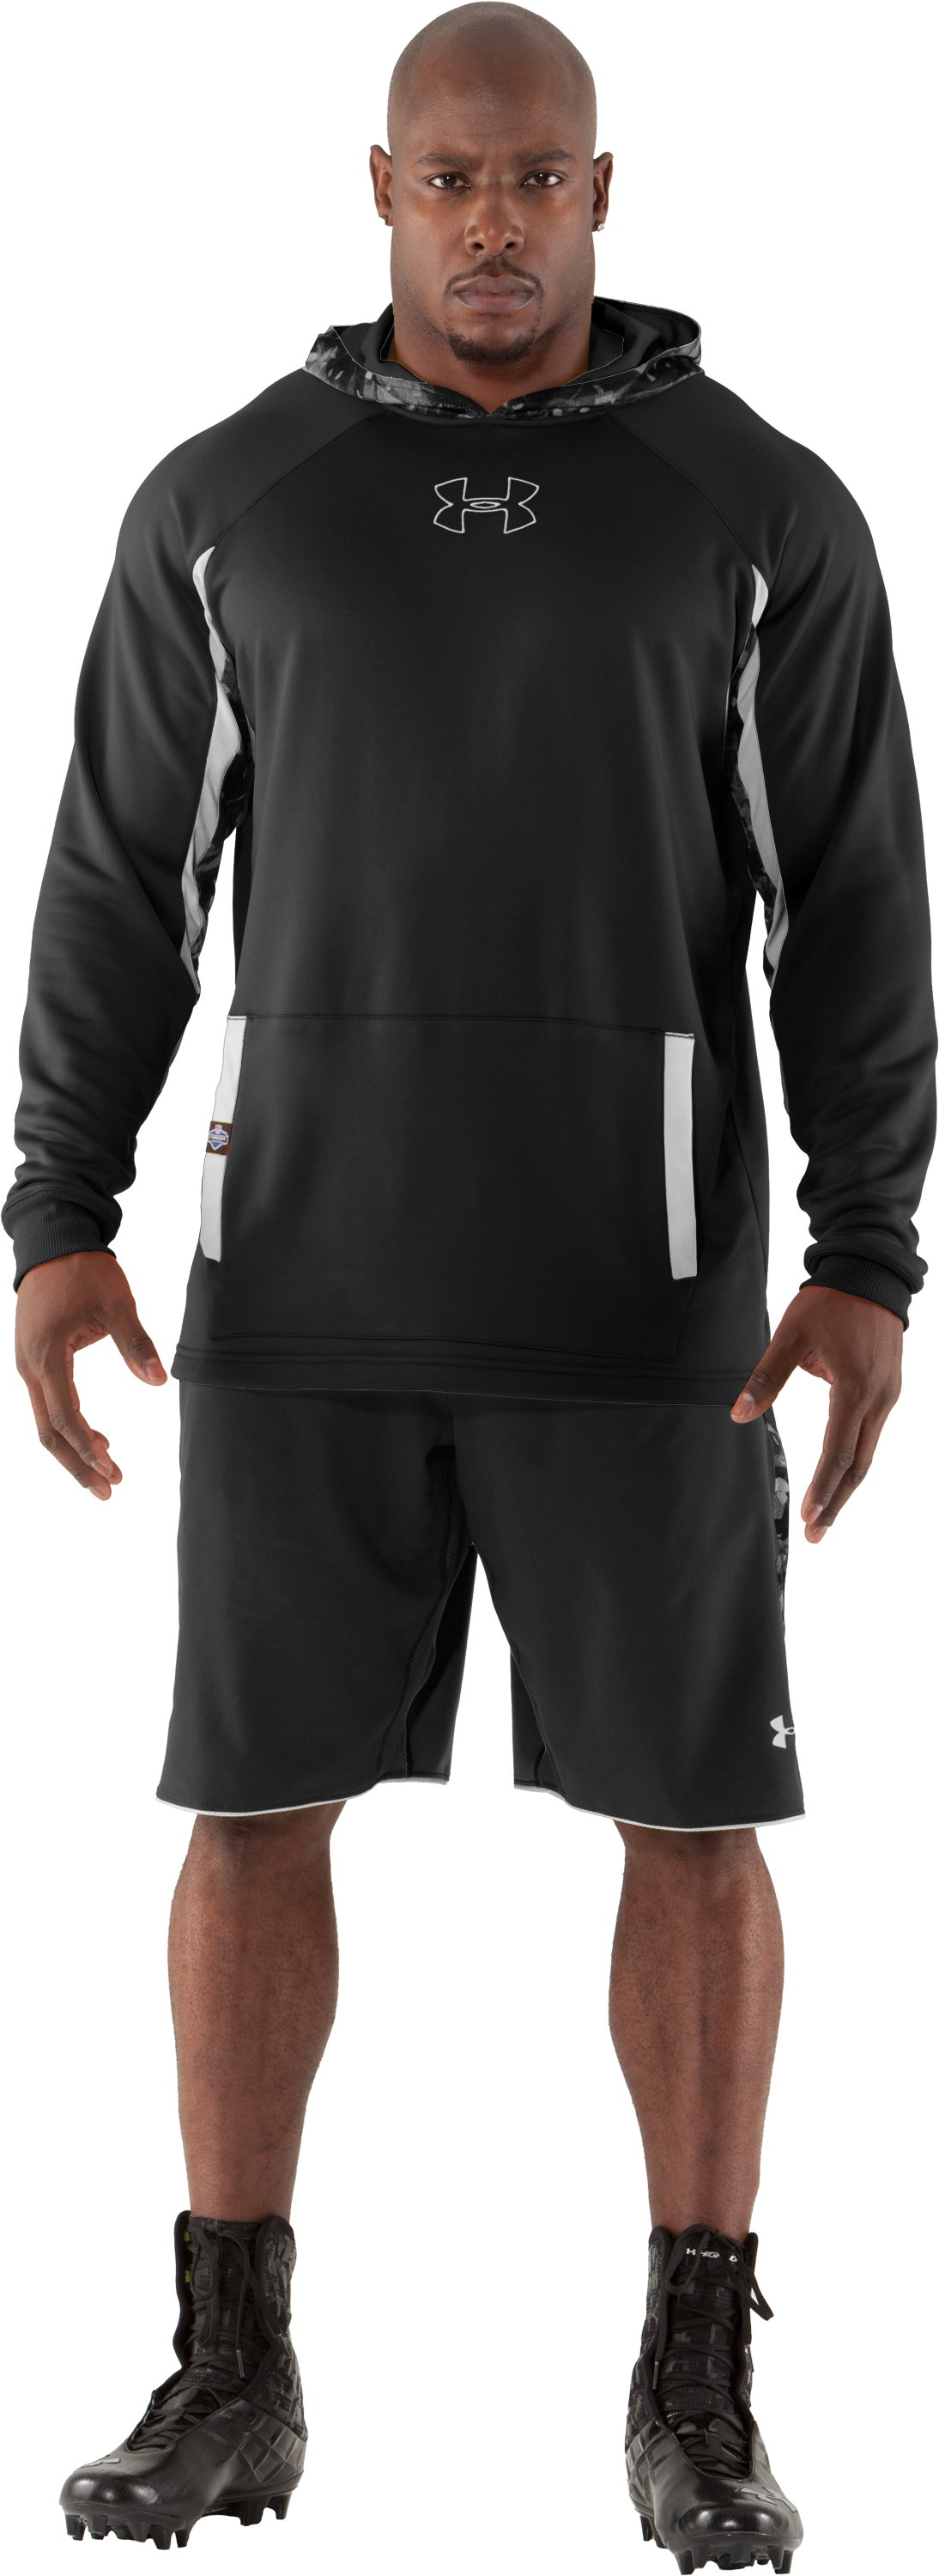 Men's NFL Combine Authentic Hoodie, Black , zoomed image